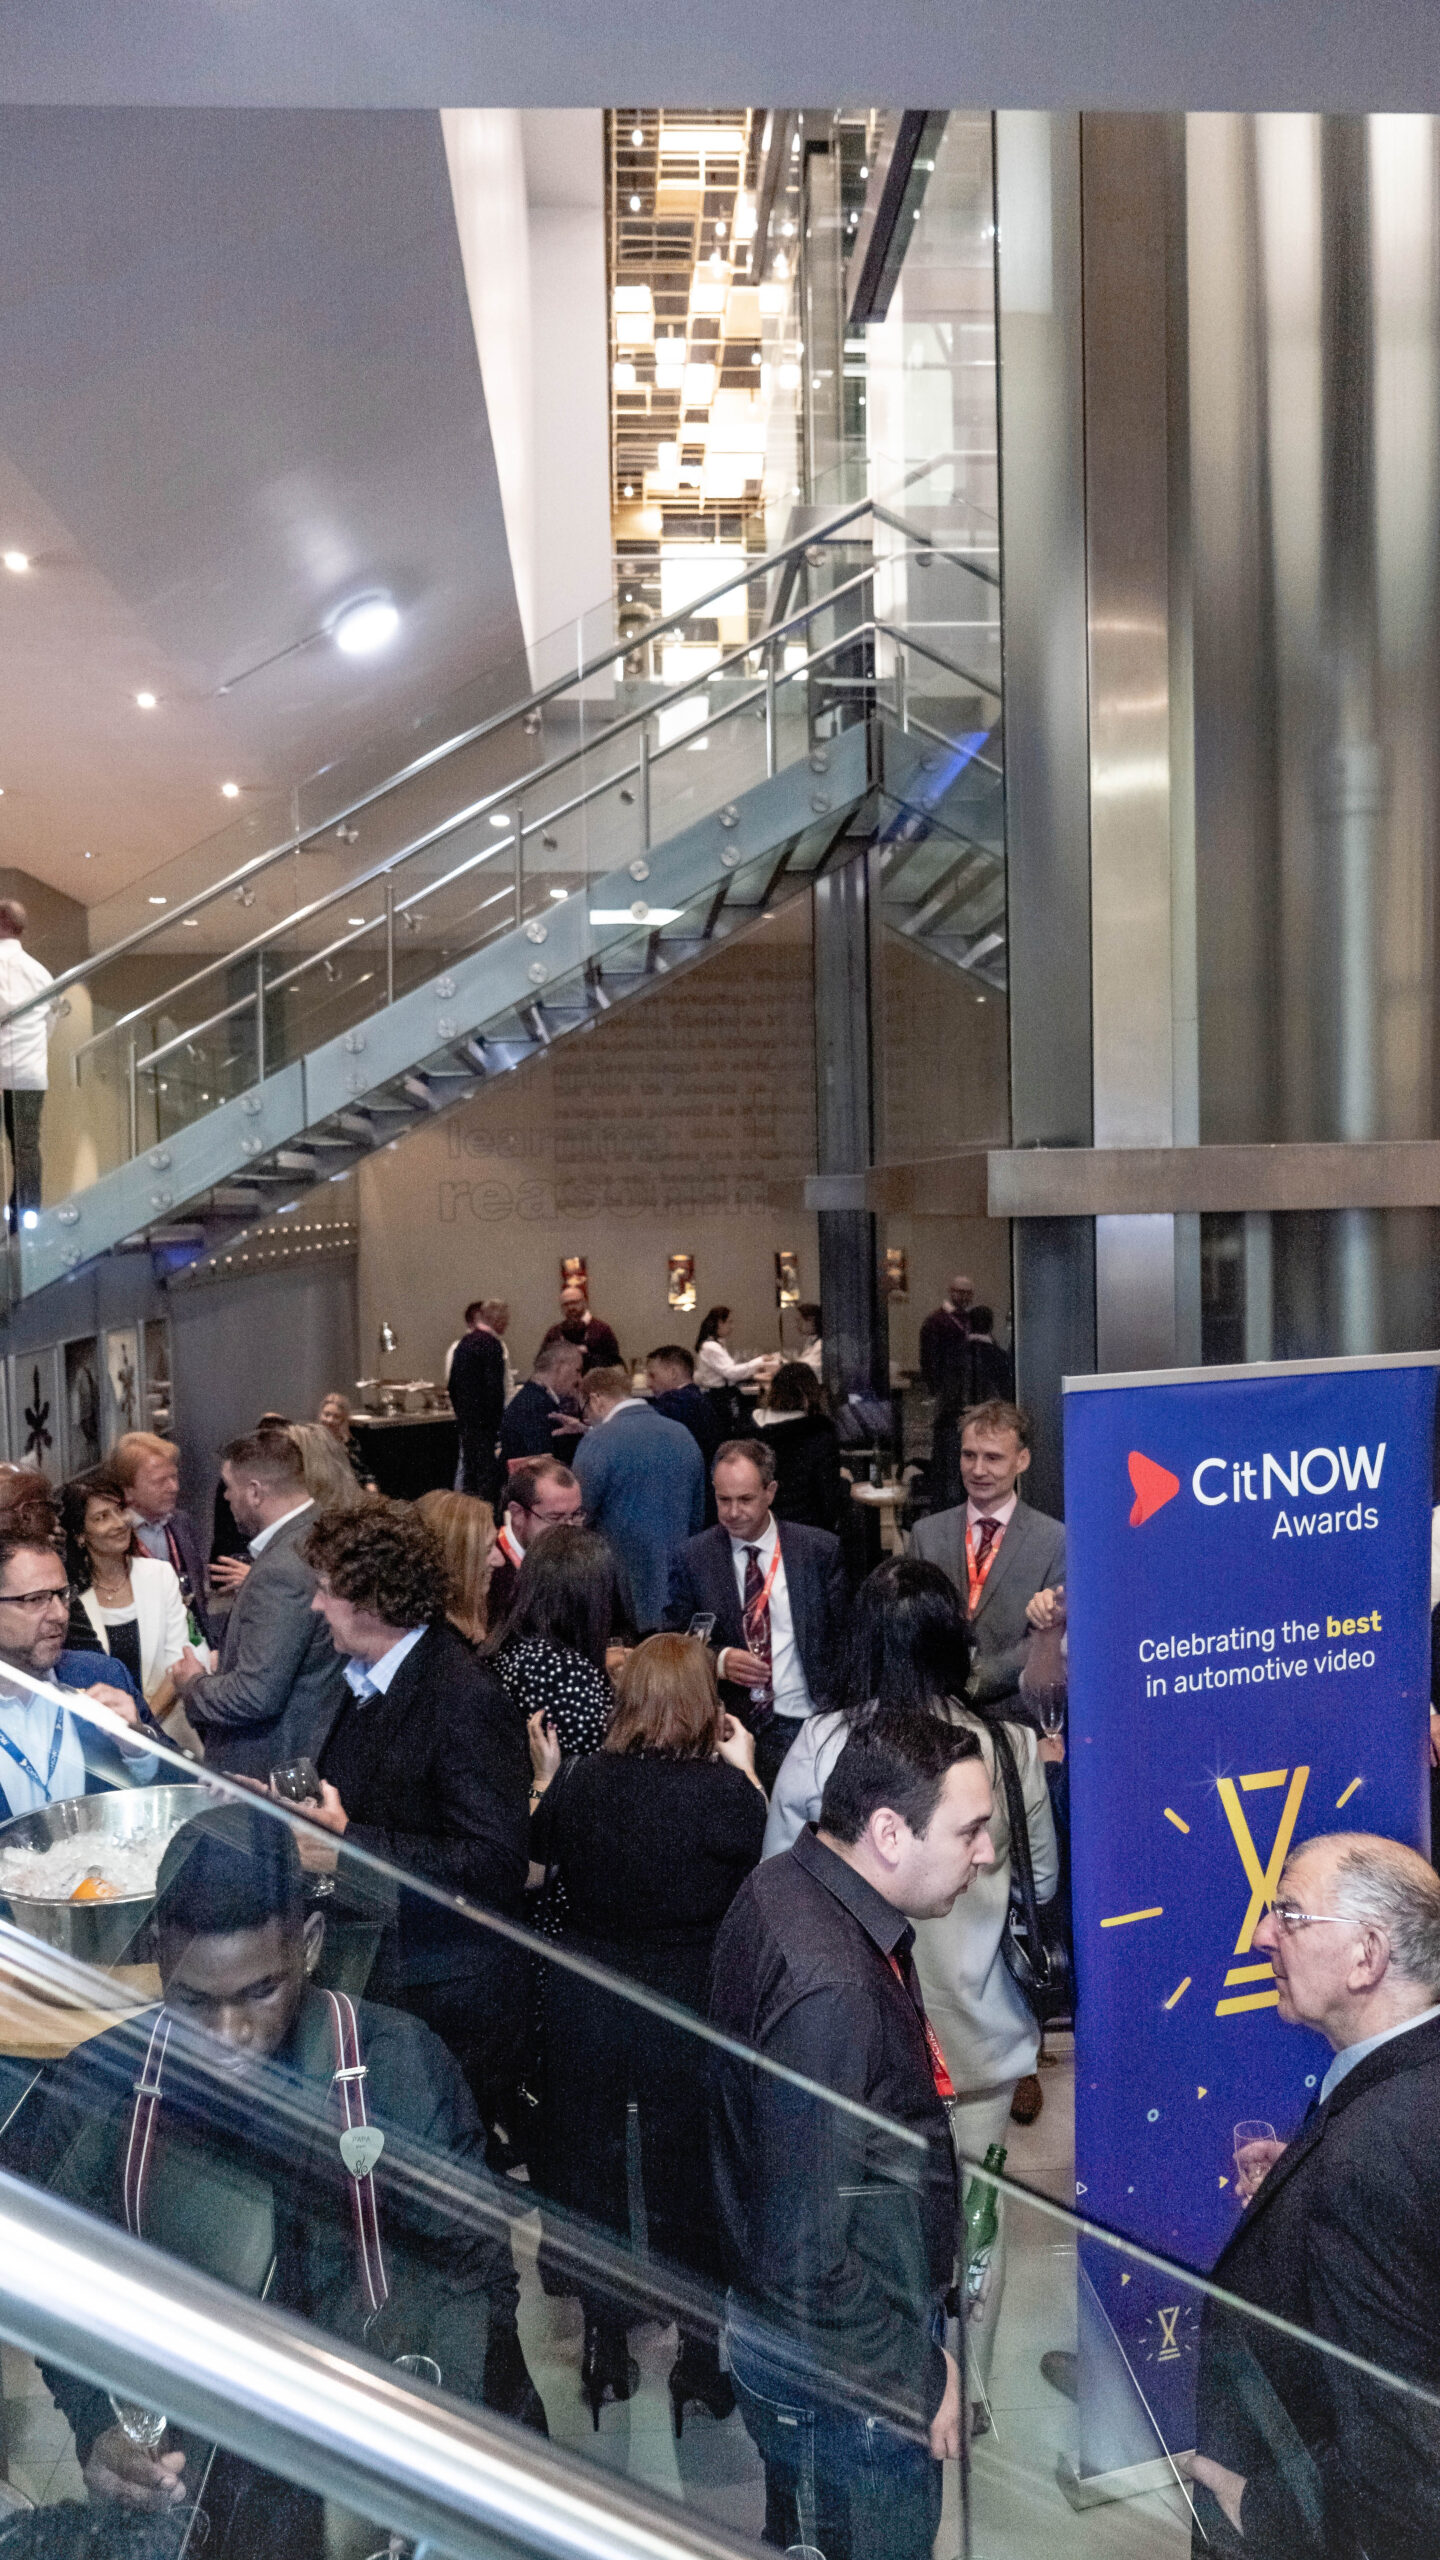 The CitNOW Awards reception room filled with people